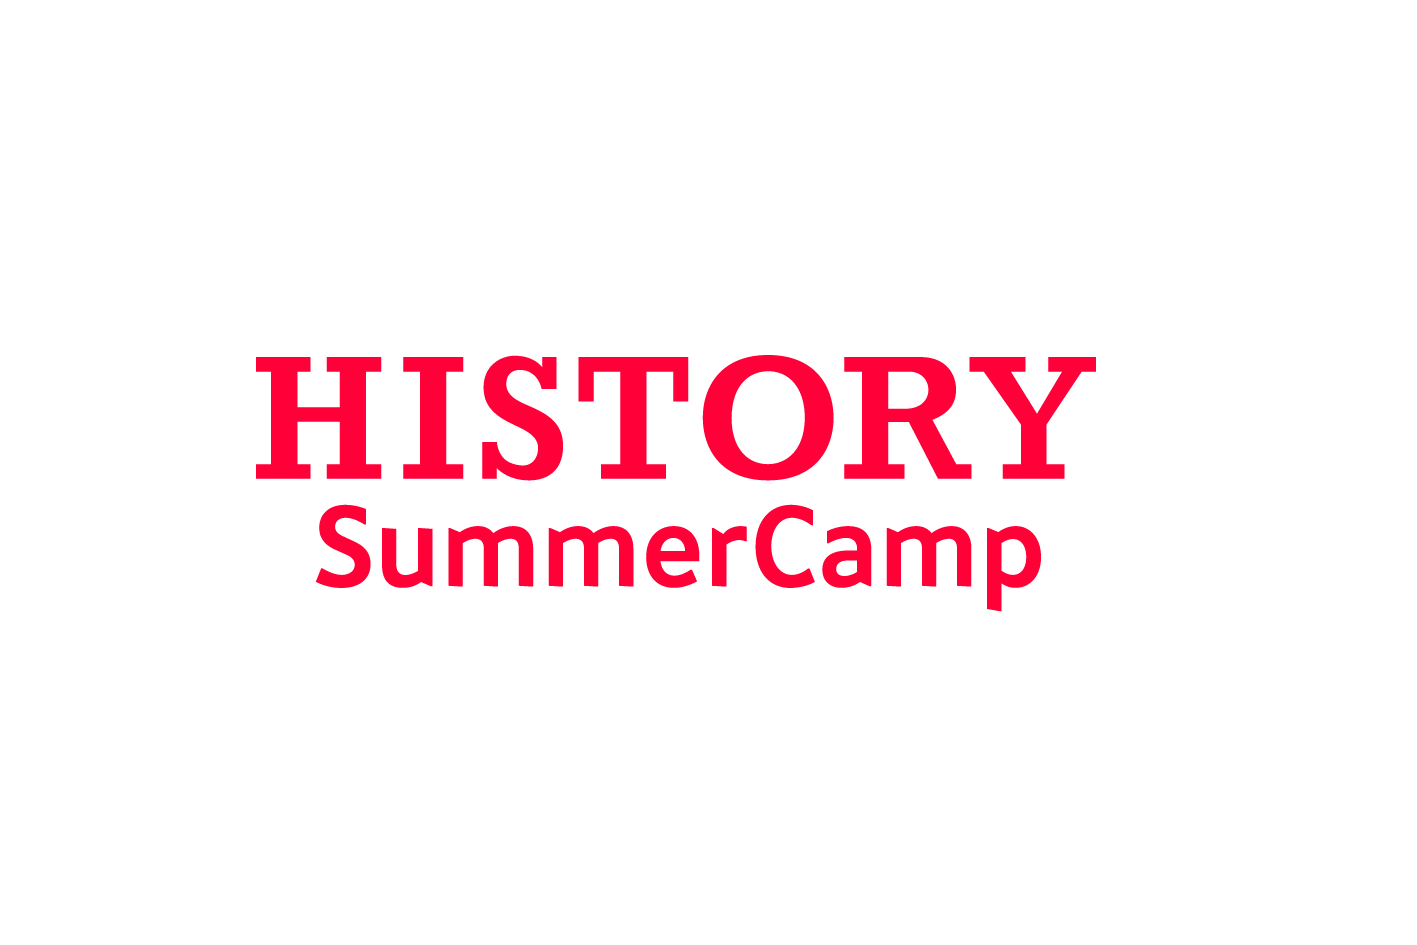 History SummerCamp 2016